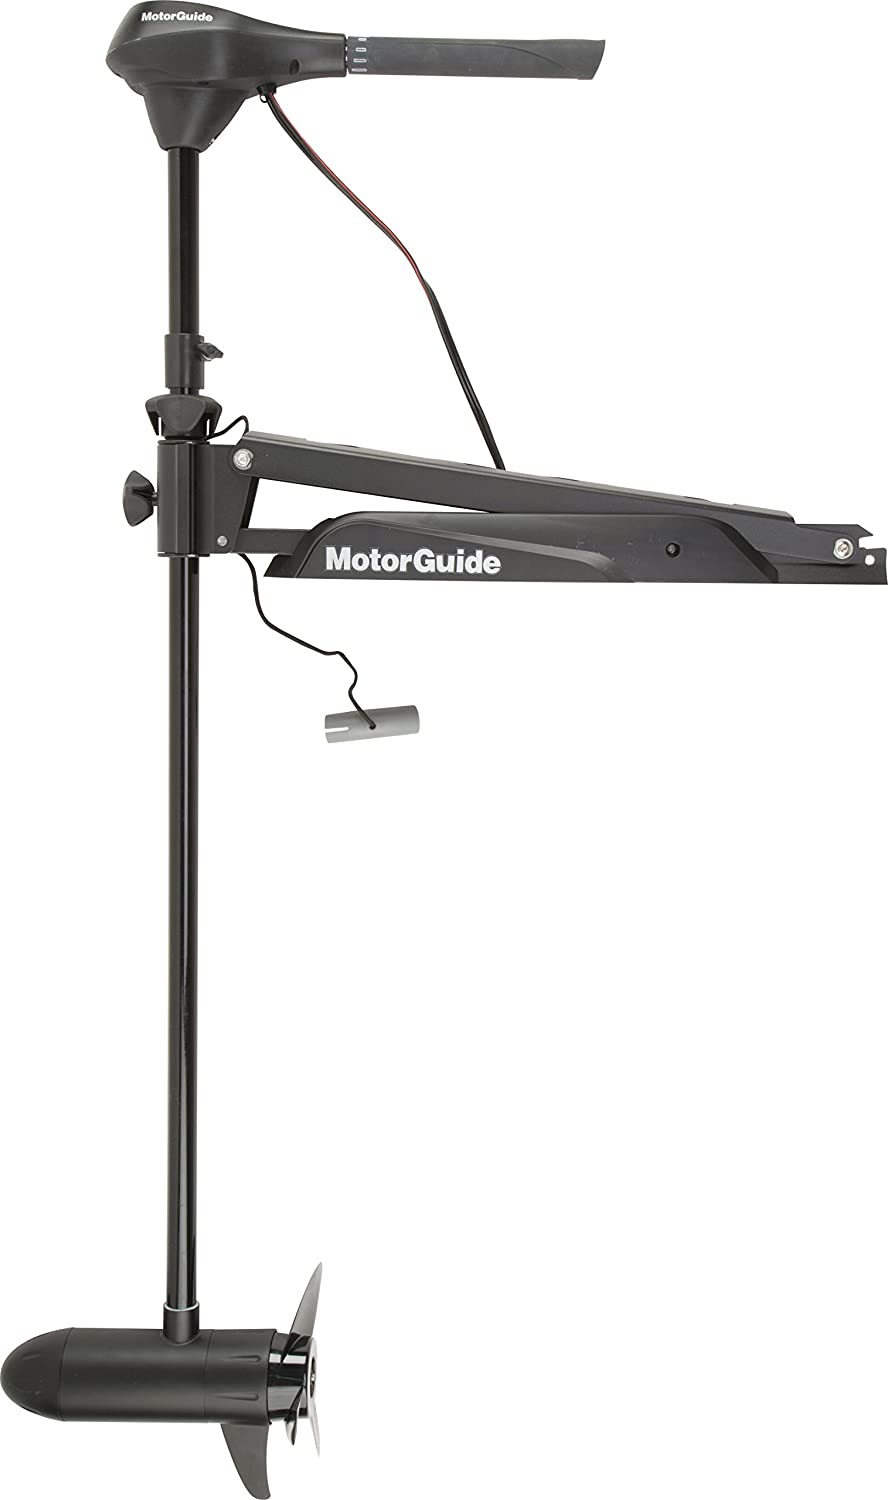 ATTWOOD MOTORGUIDE 940200210 Bow Mount Or Pontoon Boating Equipment